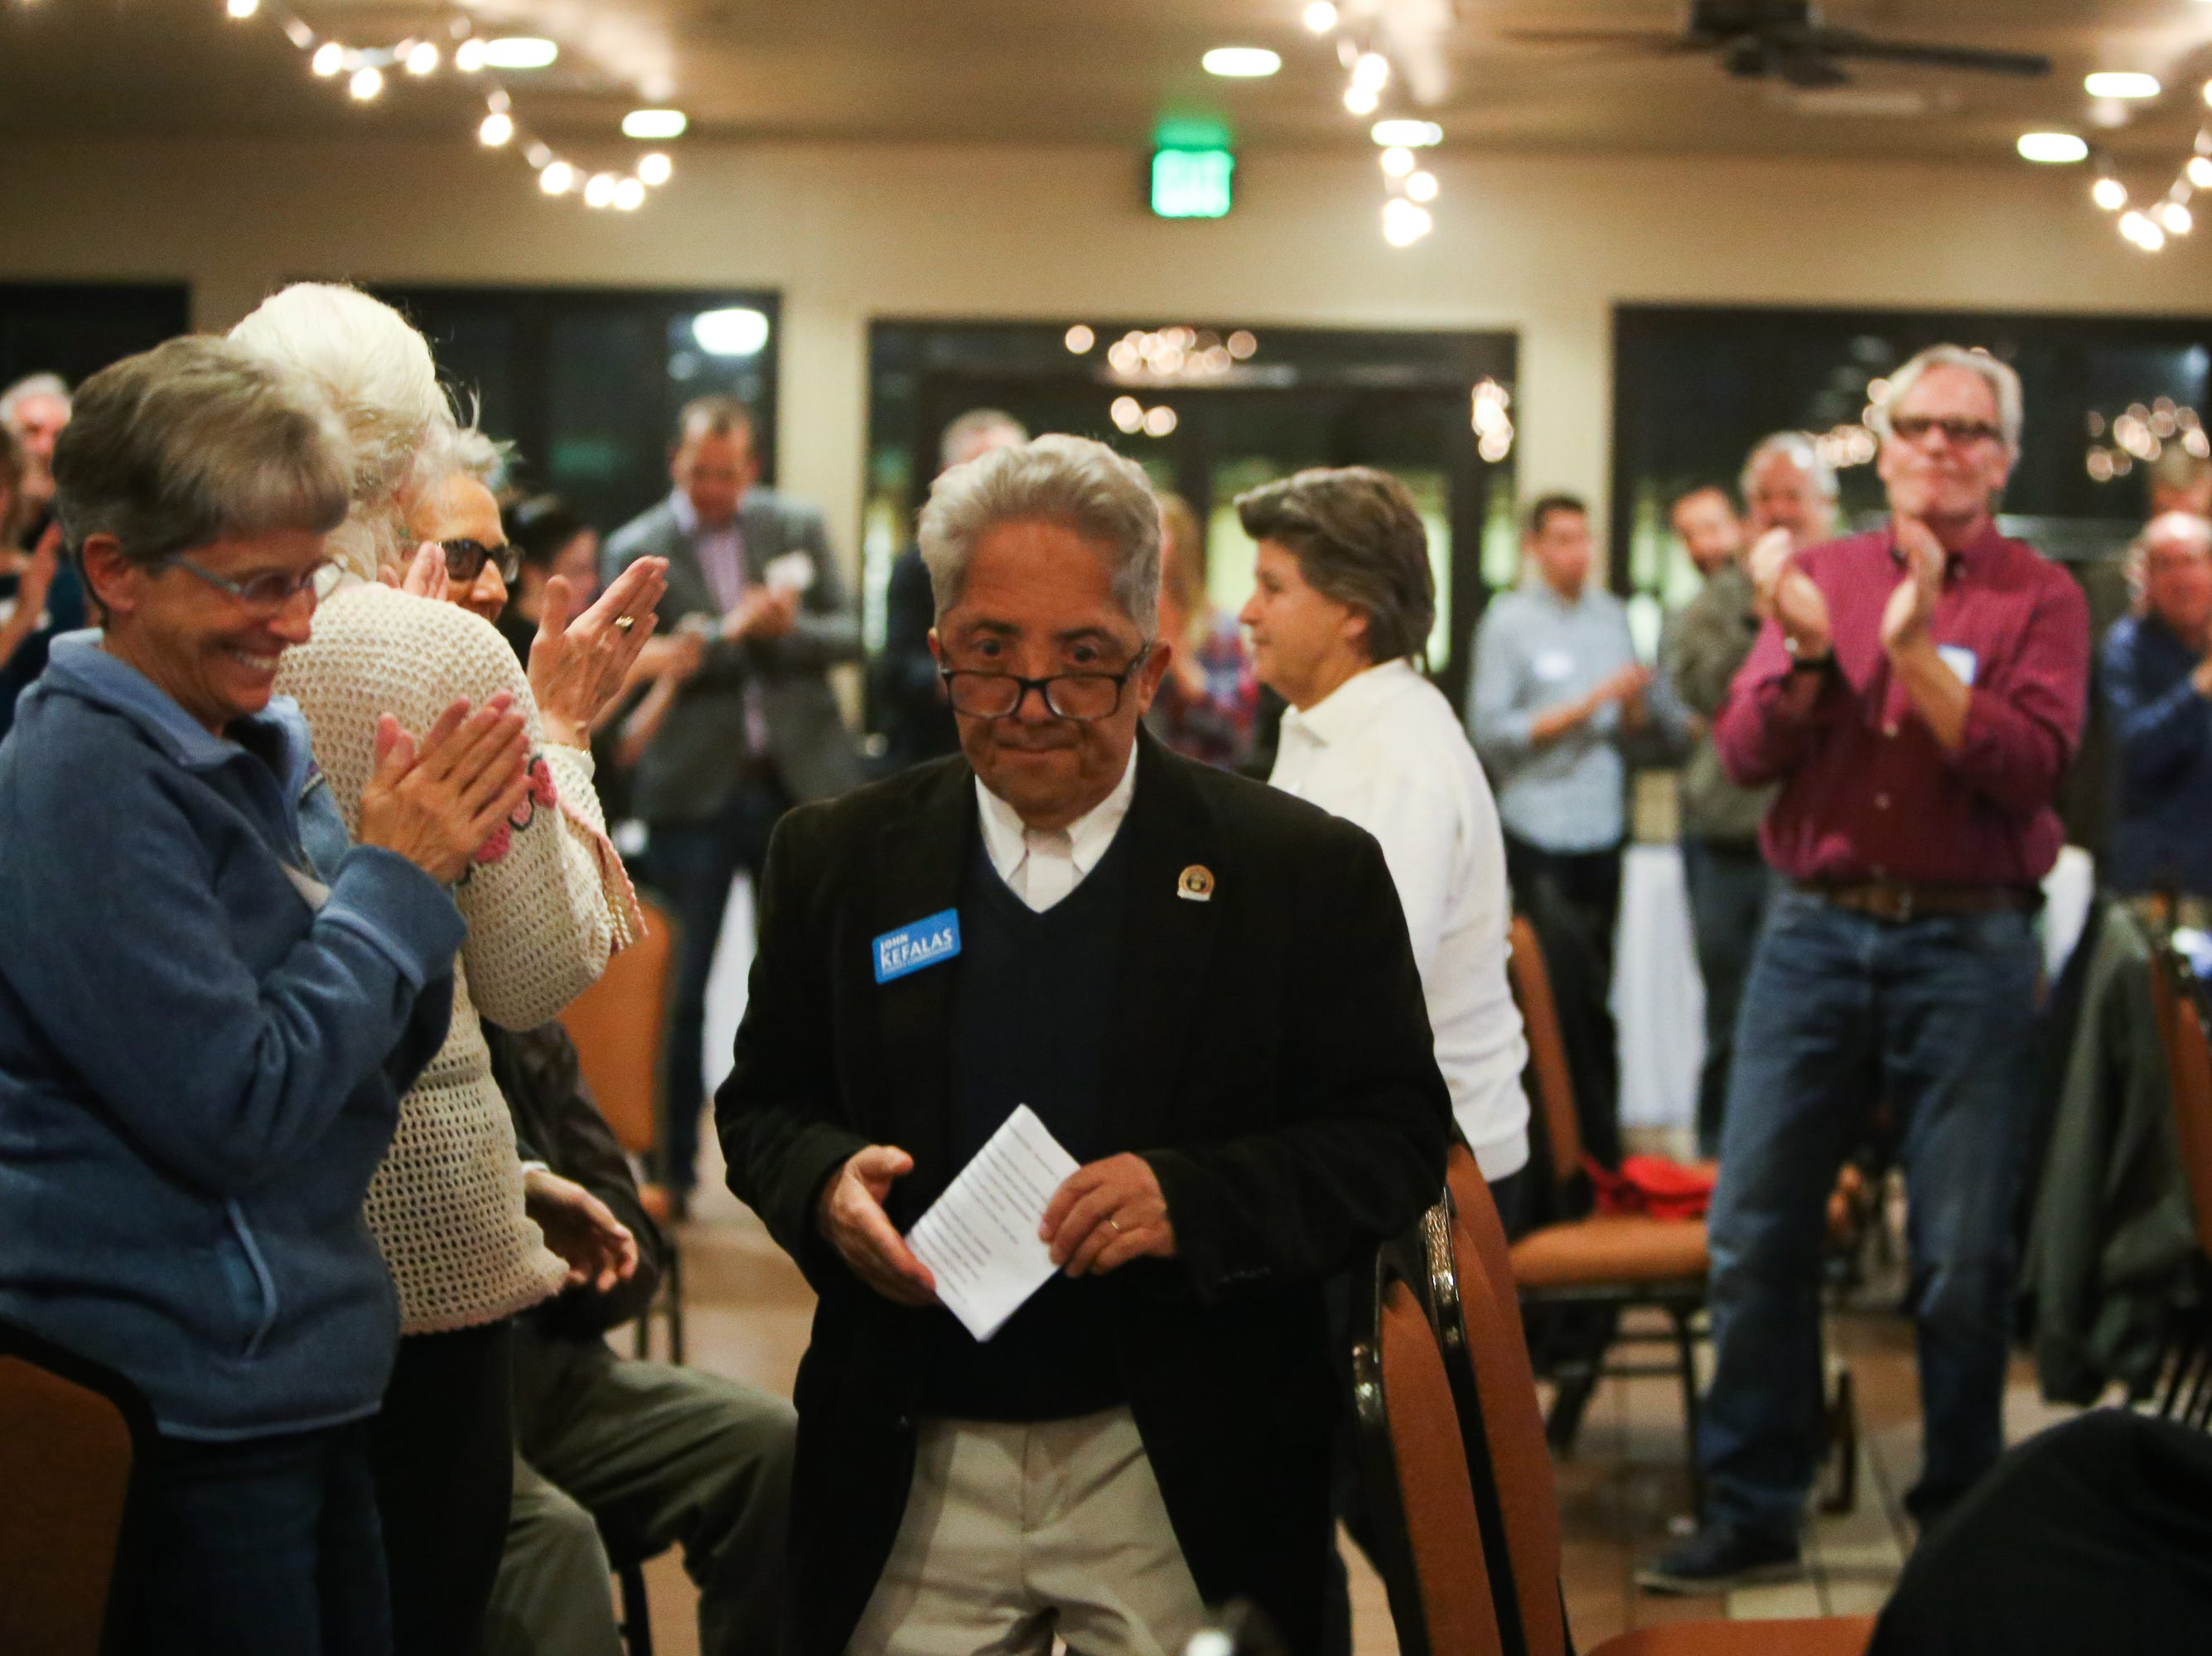 Sen. John Kefalas walks through a crowd of applause as he heads towards the stage to give his acceptance speech Tuesday evening at the Democrats' watch party at the Fort Collins Marriott.